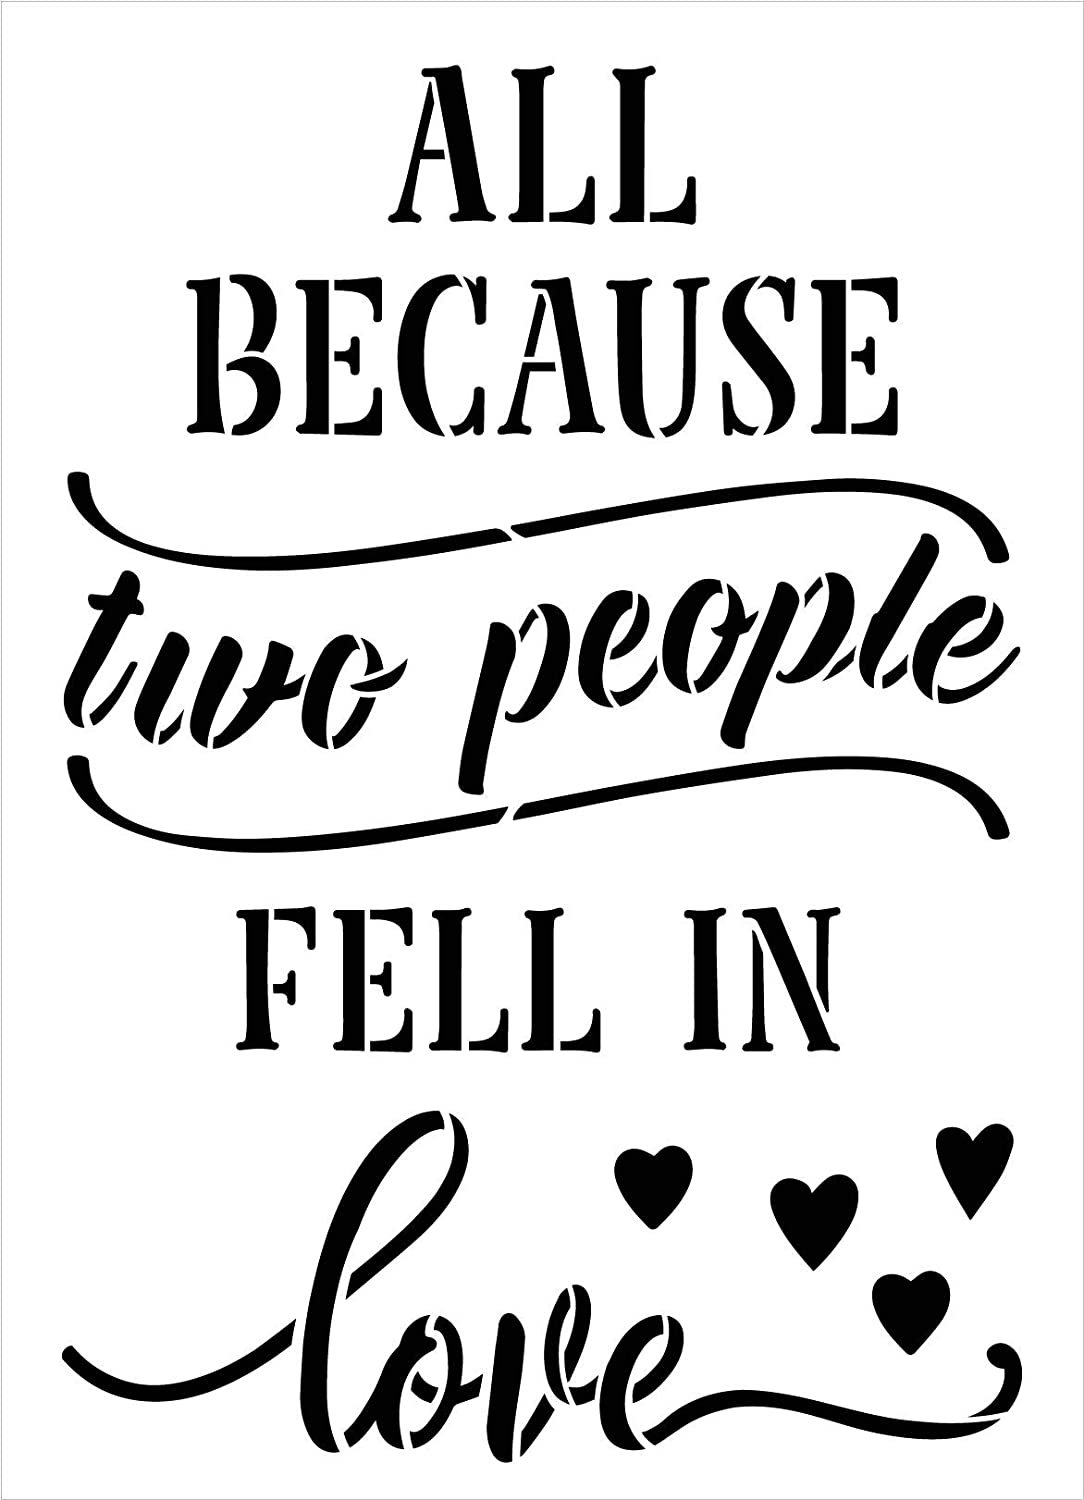 Because Two People Fell in Love Stencil by StudioR12 | DIY Couple Marriage Home Decor | Craft & Paint Wood Sign Reusable Mylar Template | Cursive Script Heart Select Size